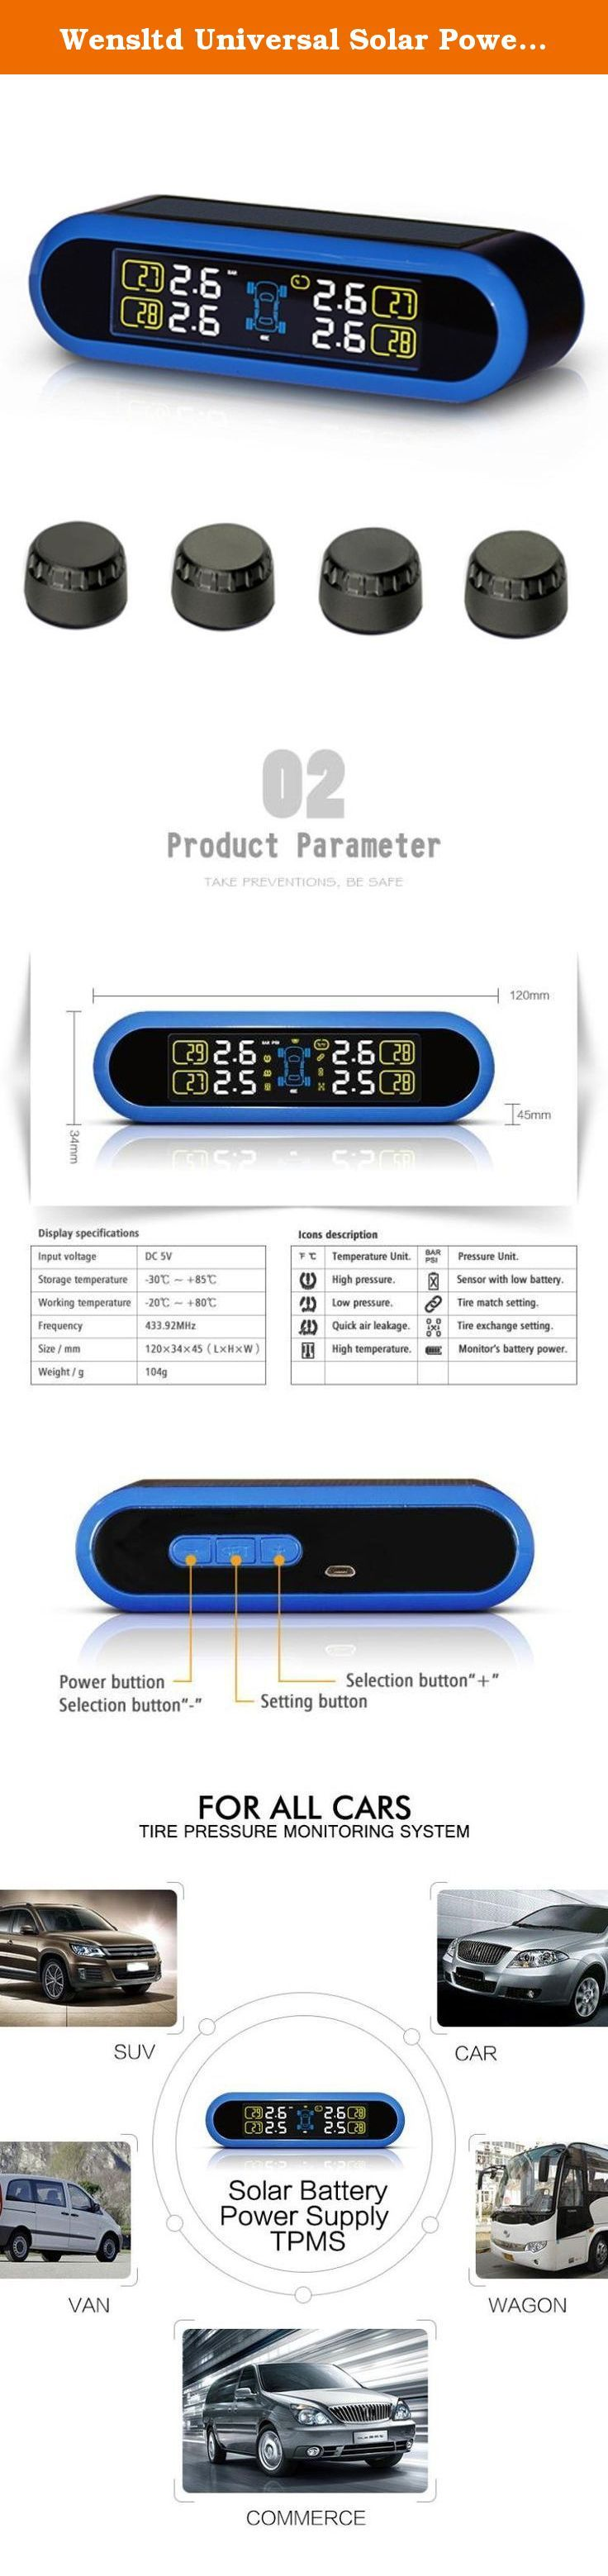 Wensltd Universal Solar Power TPMS Wireless Tire Pressure Monitoring +4 External Sensors. Clear LCD screen display in different colors, easier to read when driving With solar panel, can be charged with solar power or via a charging cable (not included) The external sensor features dustproof, waterproof, low and high temperature resistance, jilt fly prevention and anti-theft Can automatically shut down to save battery when the tire stops running for 10 minutes Easy installation, no wire...